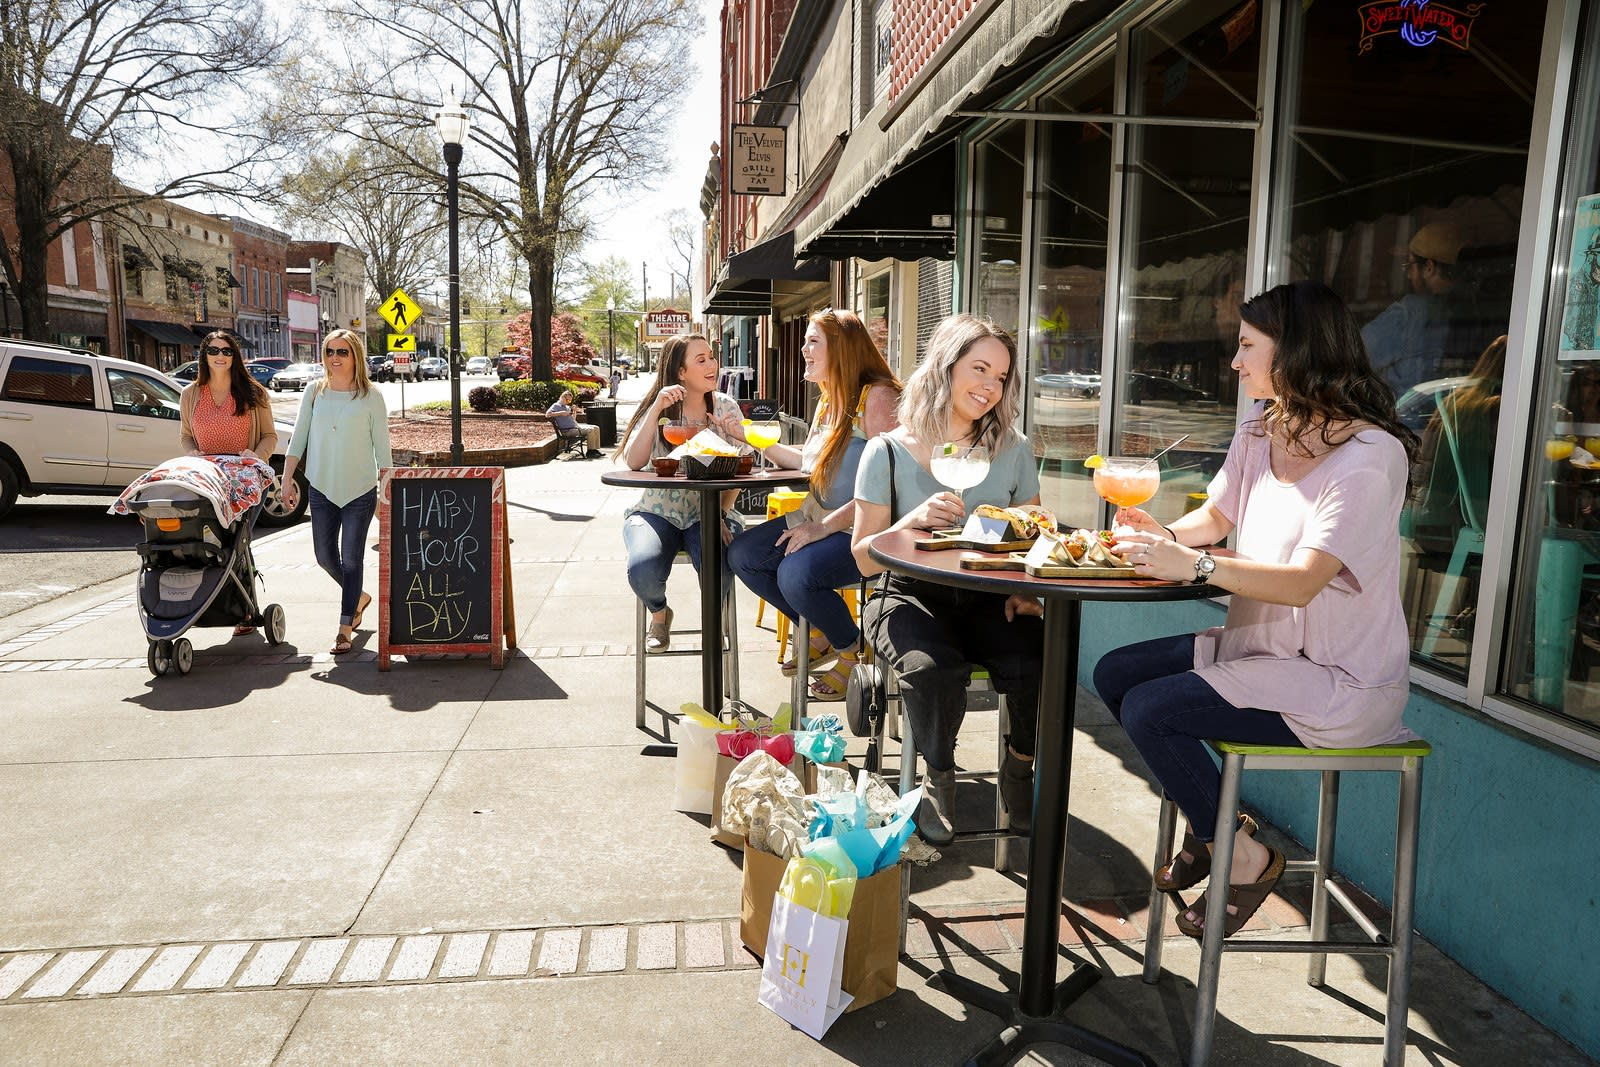 Cityscape of downtown Milledgeville with people milling about